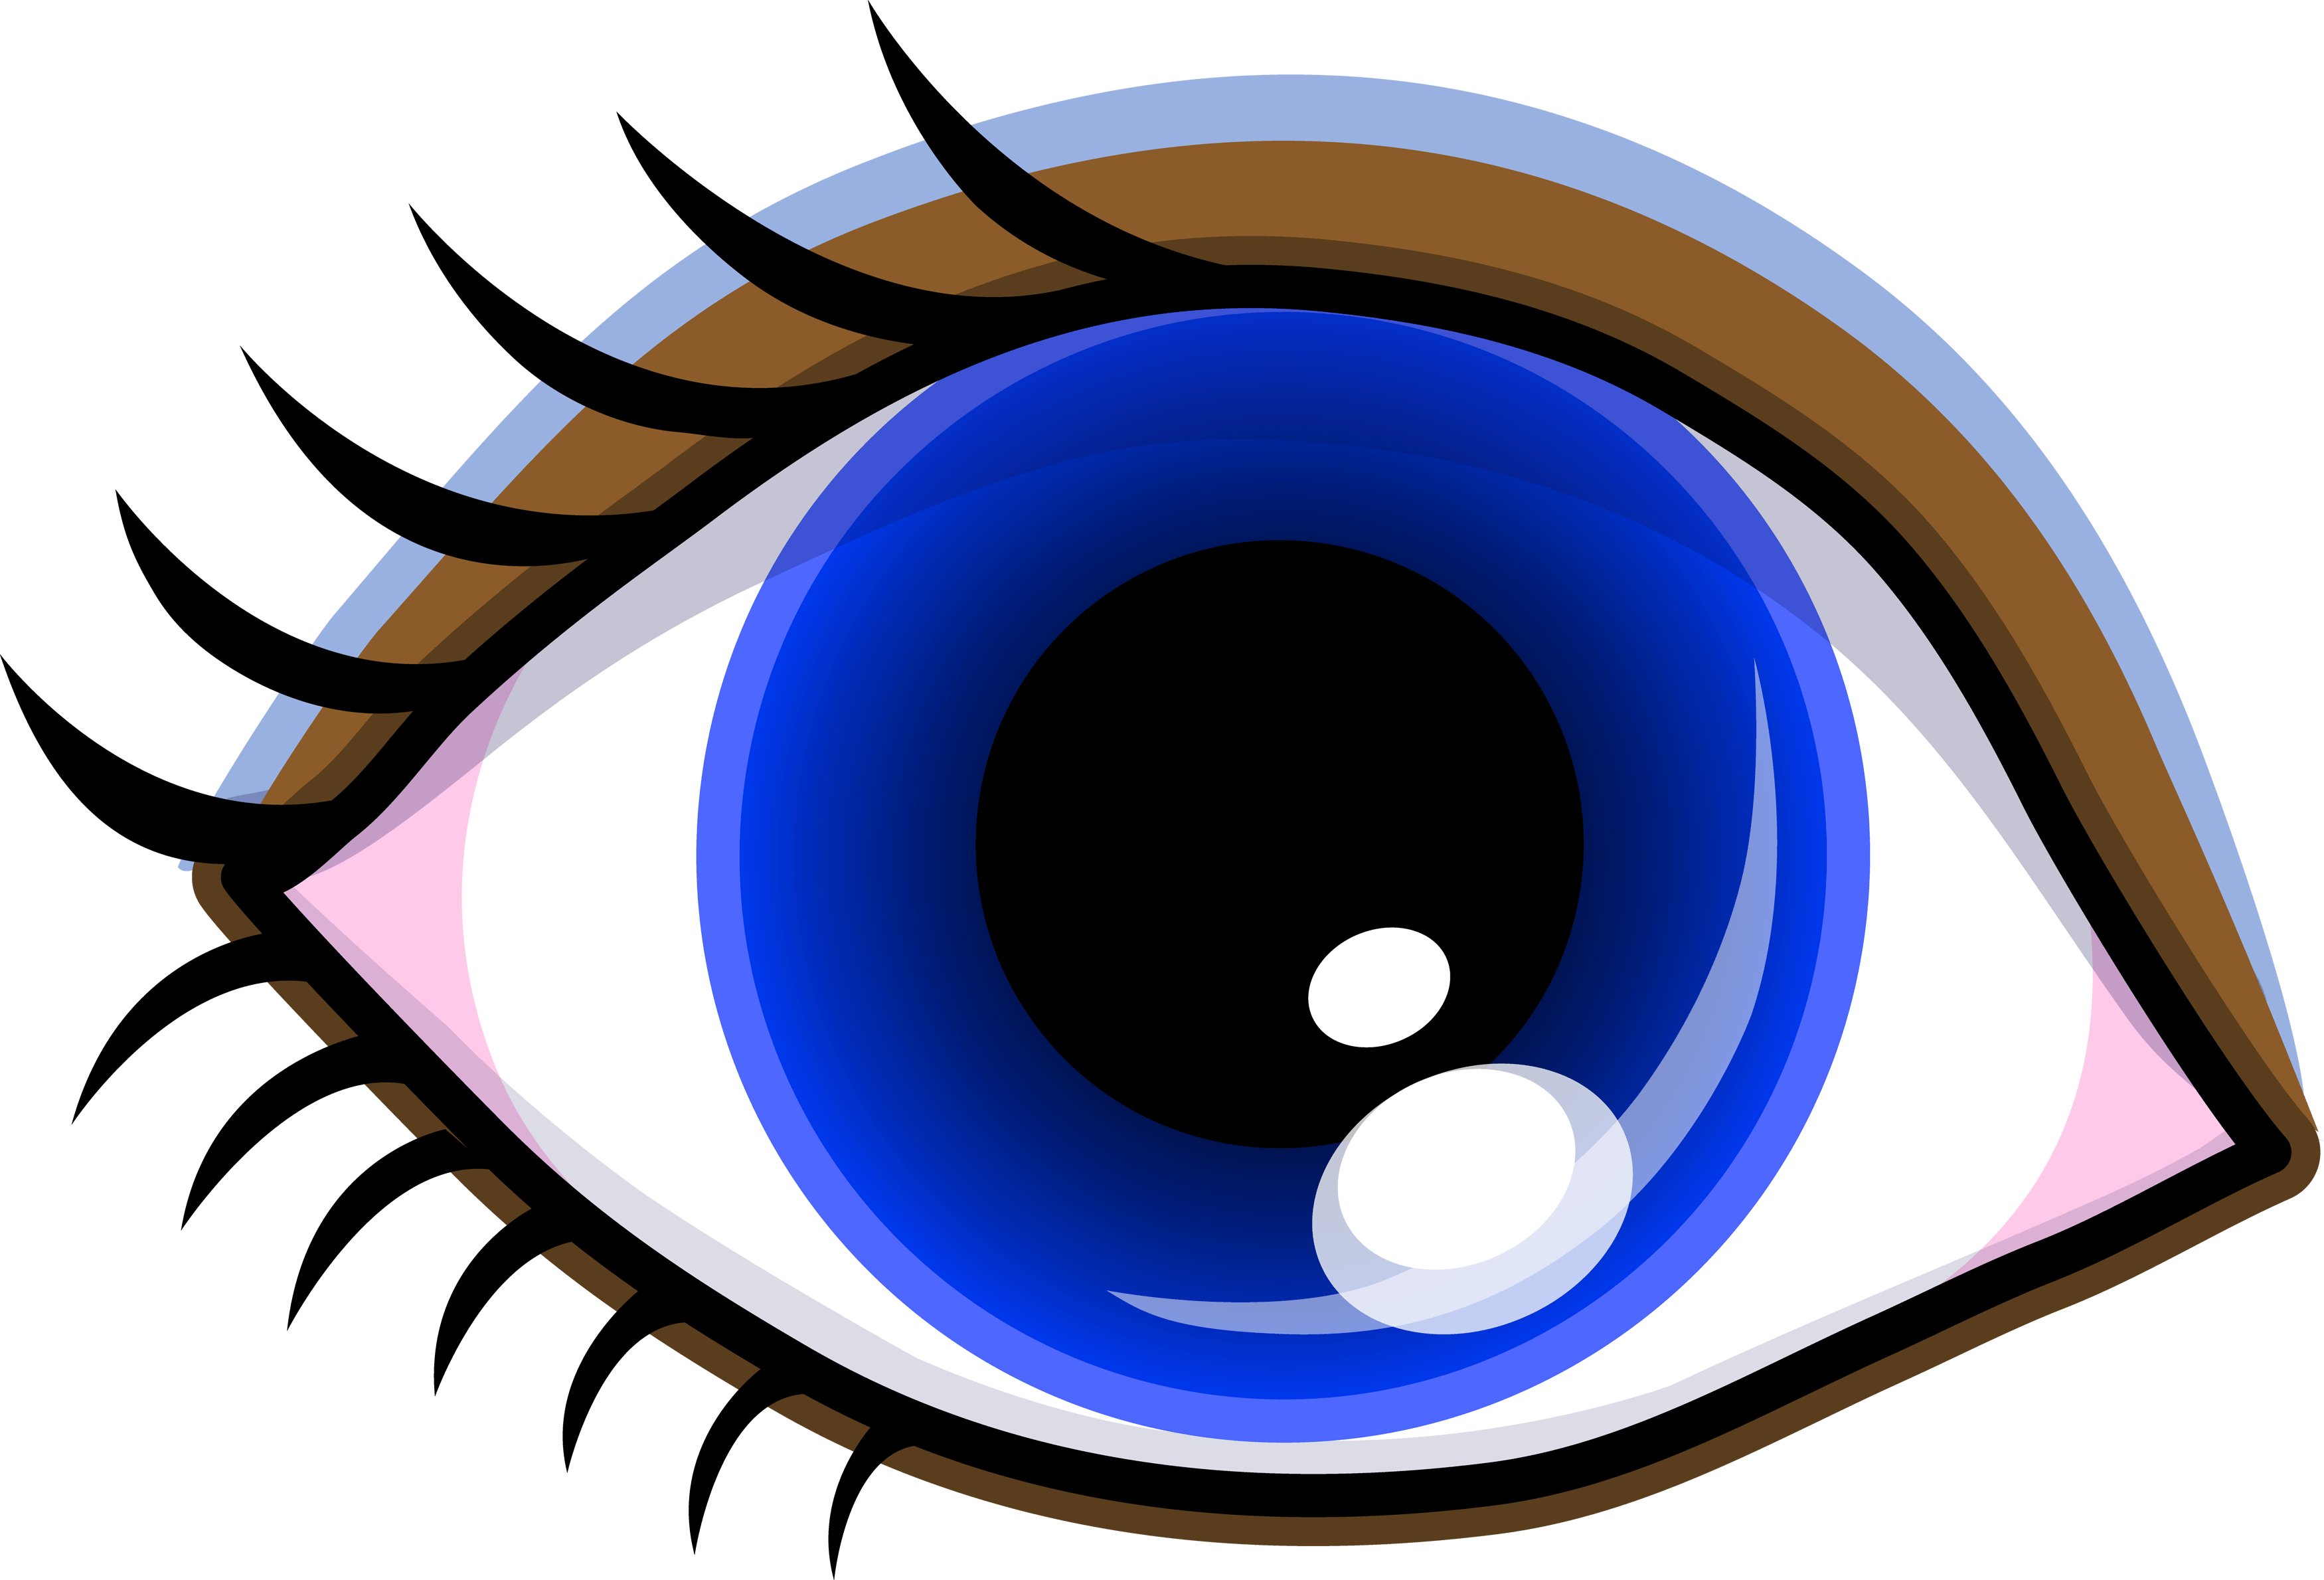 clipart transparent library Anime Eyes Clipart at GetDrawings